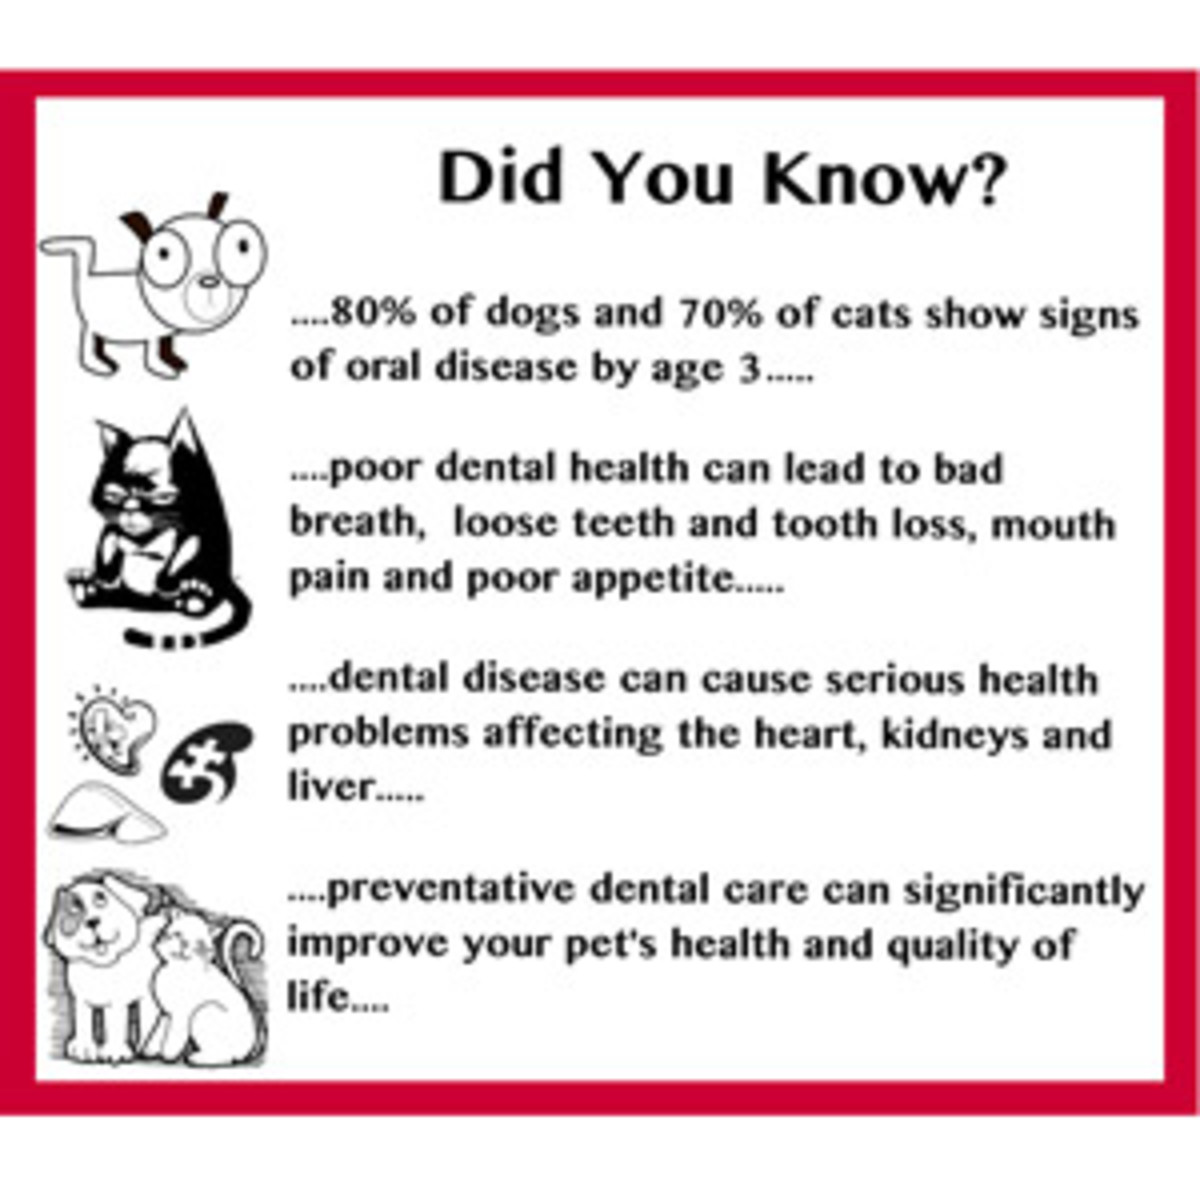 Important tips for dog and cat owners: take care of your pet's teeth!